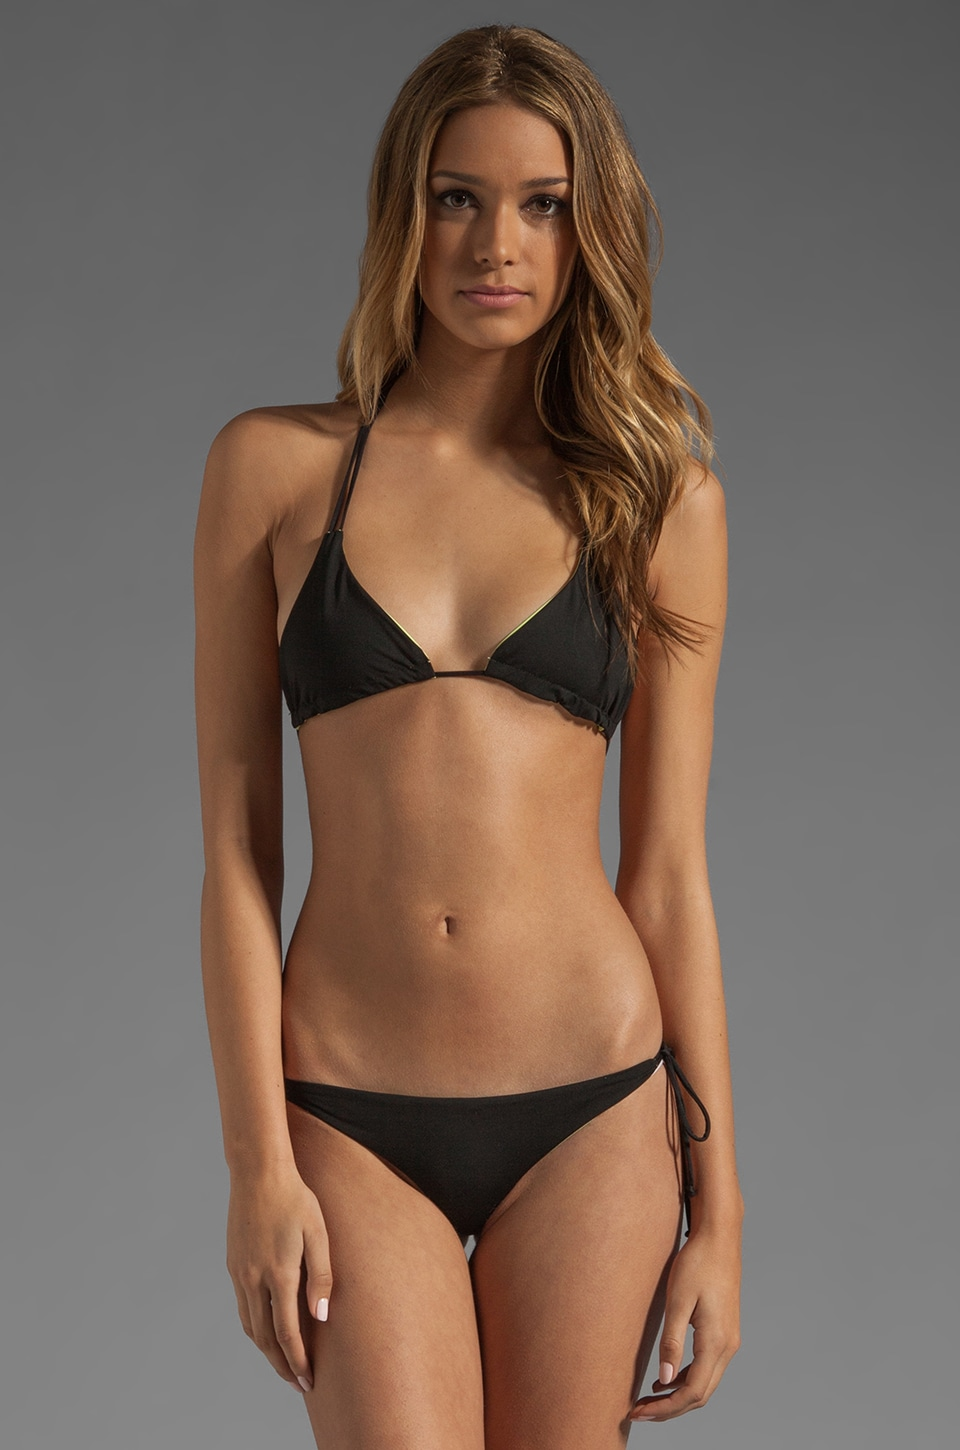 Basta Surf Kikitas Reversible Bikini Top in Black/Acid